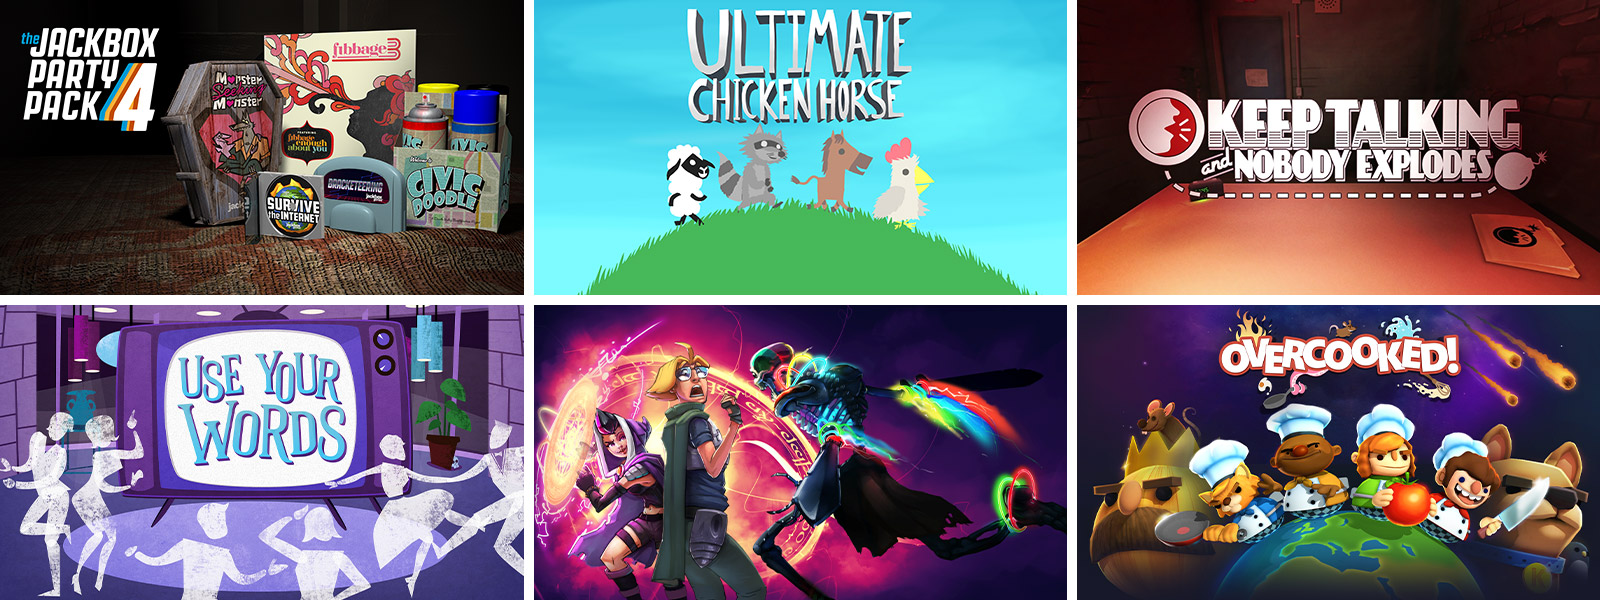 Game graphics for Jackbox Party Pack 4, Ultimate Chicken Horse, Keep Talking and Nobody Explodes, Use Your Words, The Metronomicon: Slay the Dance Floor and Overcooked